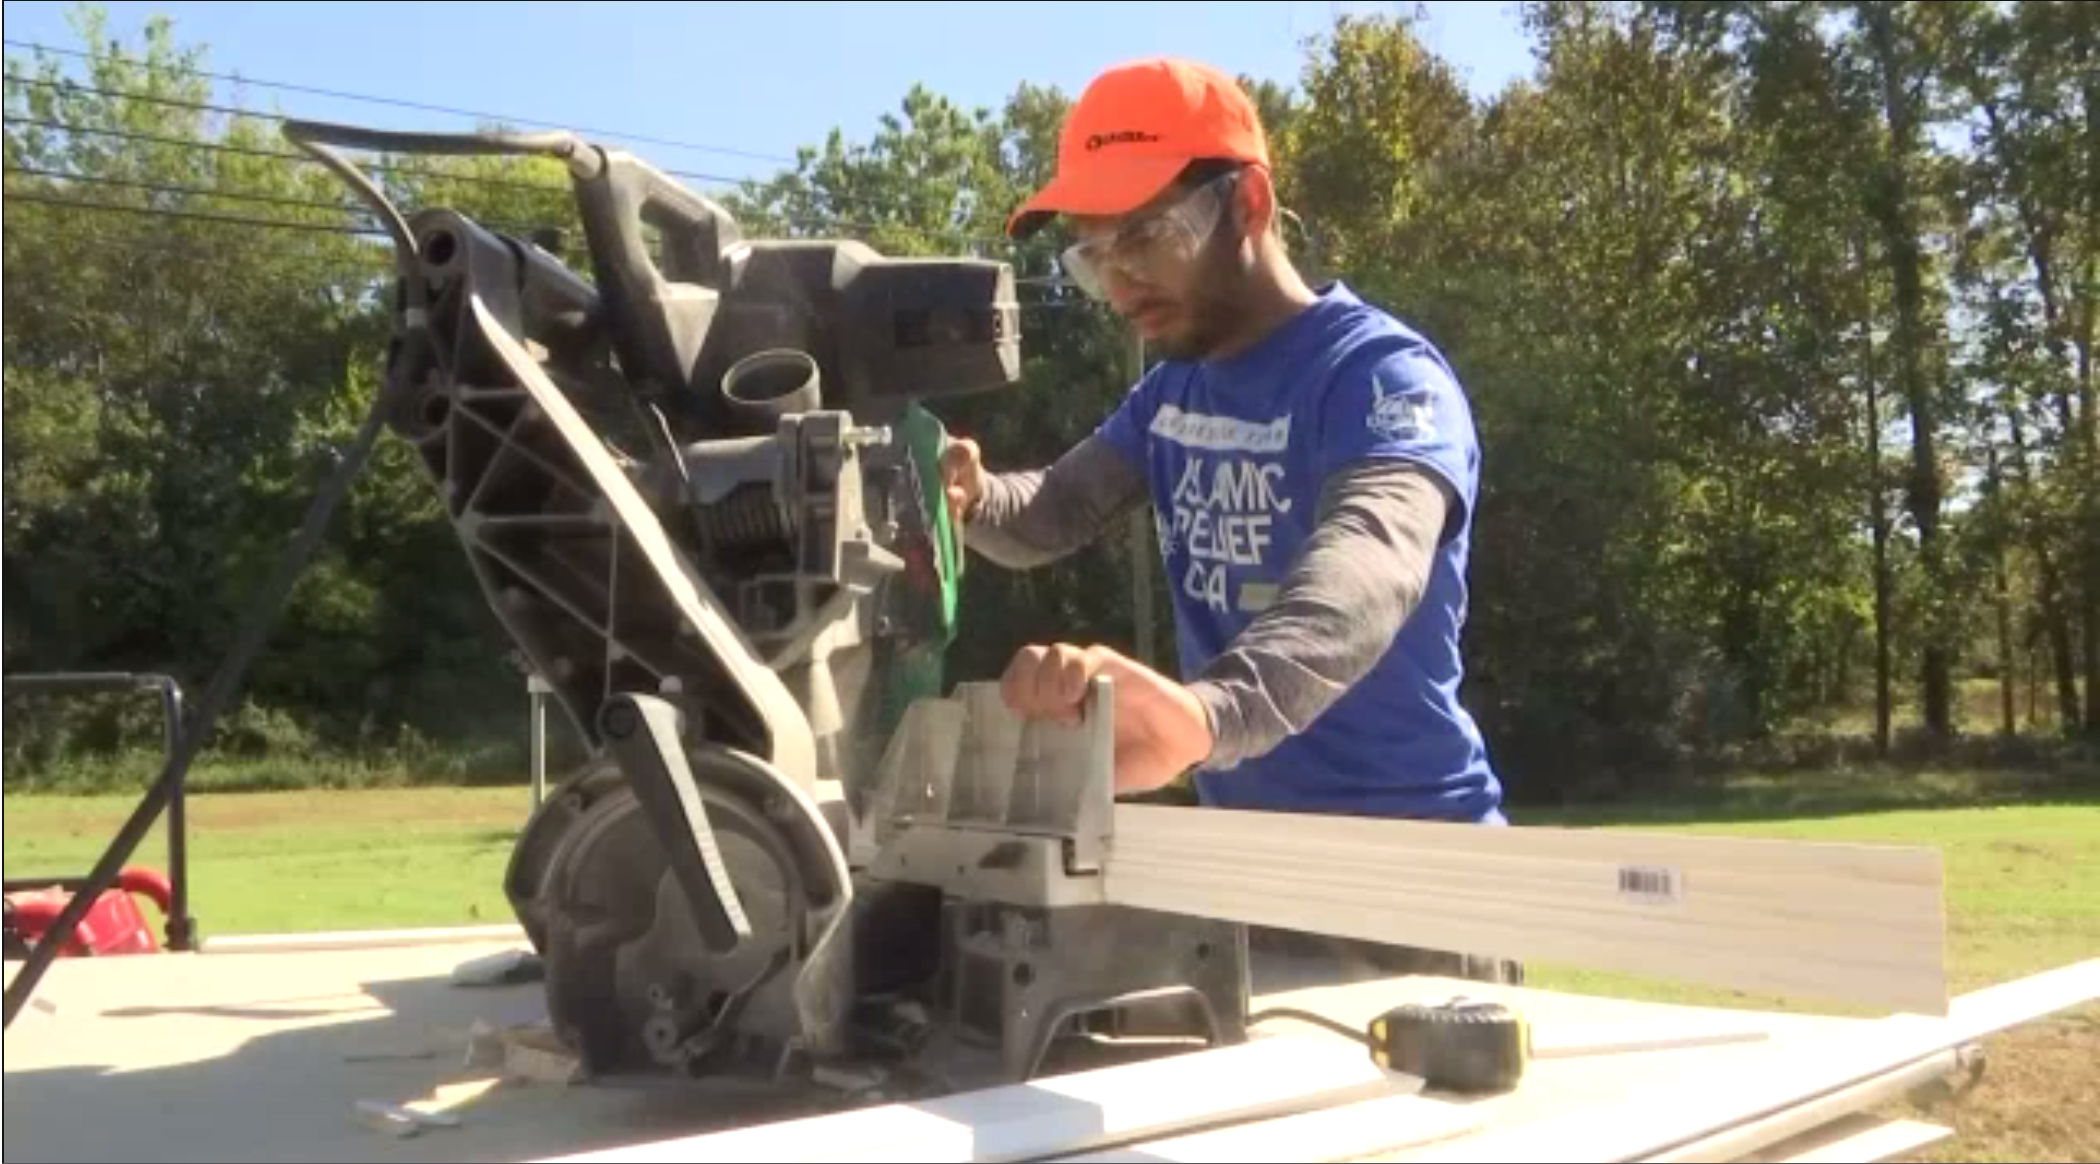 In October 2017, Ahmad Abumraighi traveled to Princeville, NC, with Islamic Relief USA to help rebuild homes damaged by Hurricane Matthew. Click on the photo to see the video of how he and others helped a stranger.  Photo credit: Spectrum News